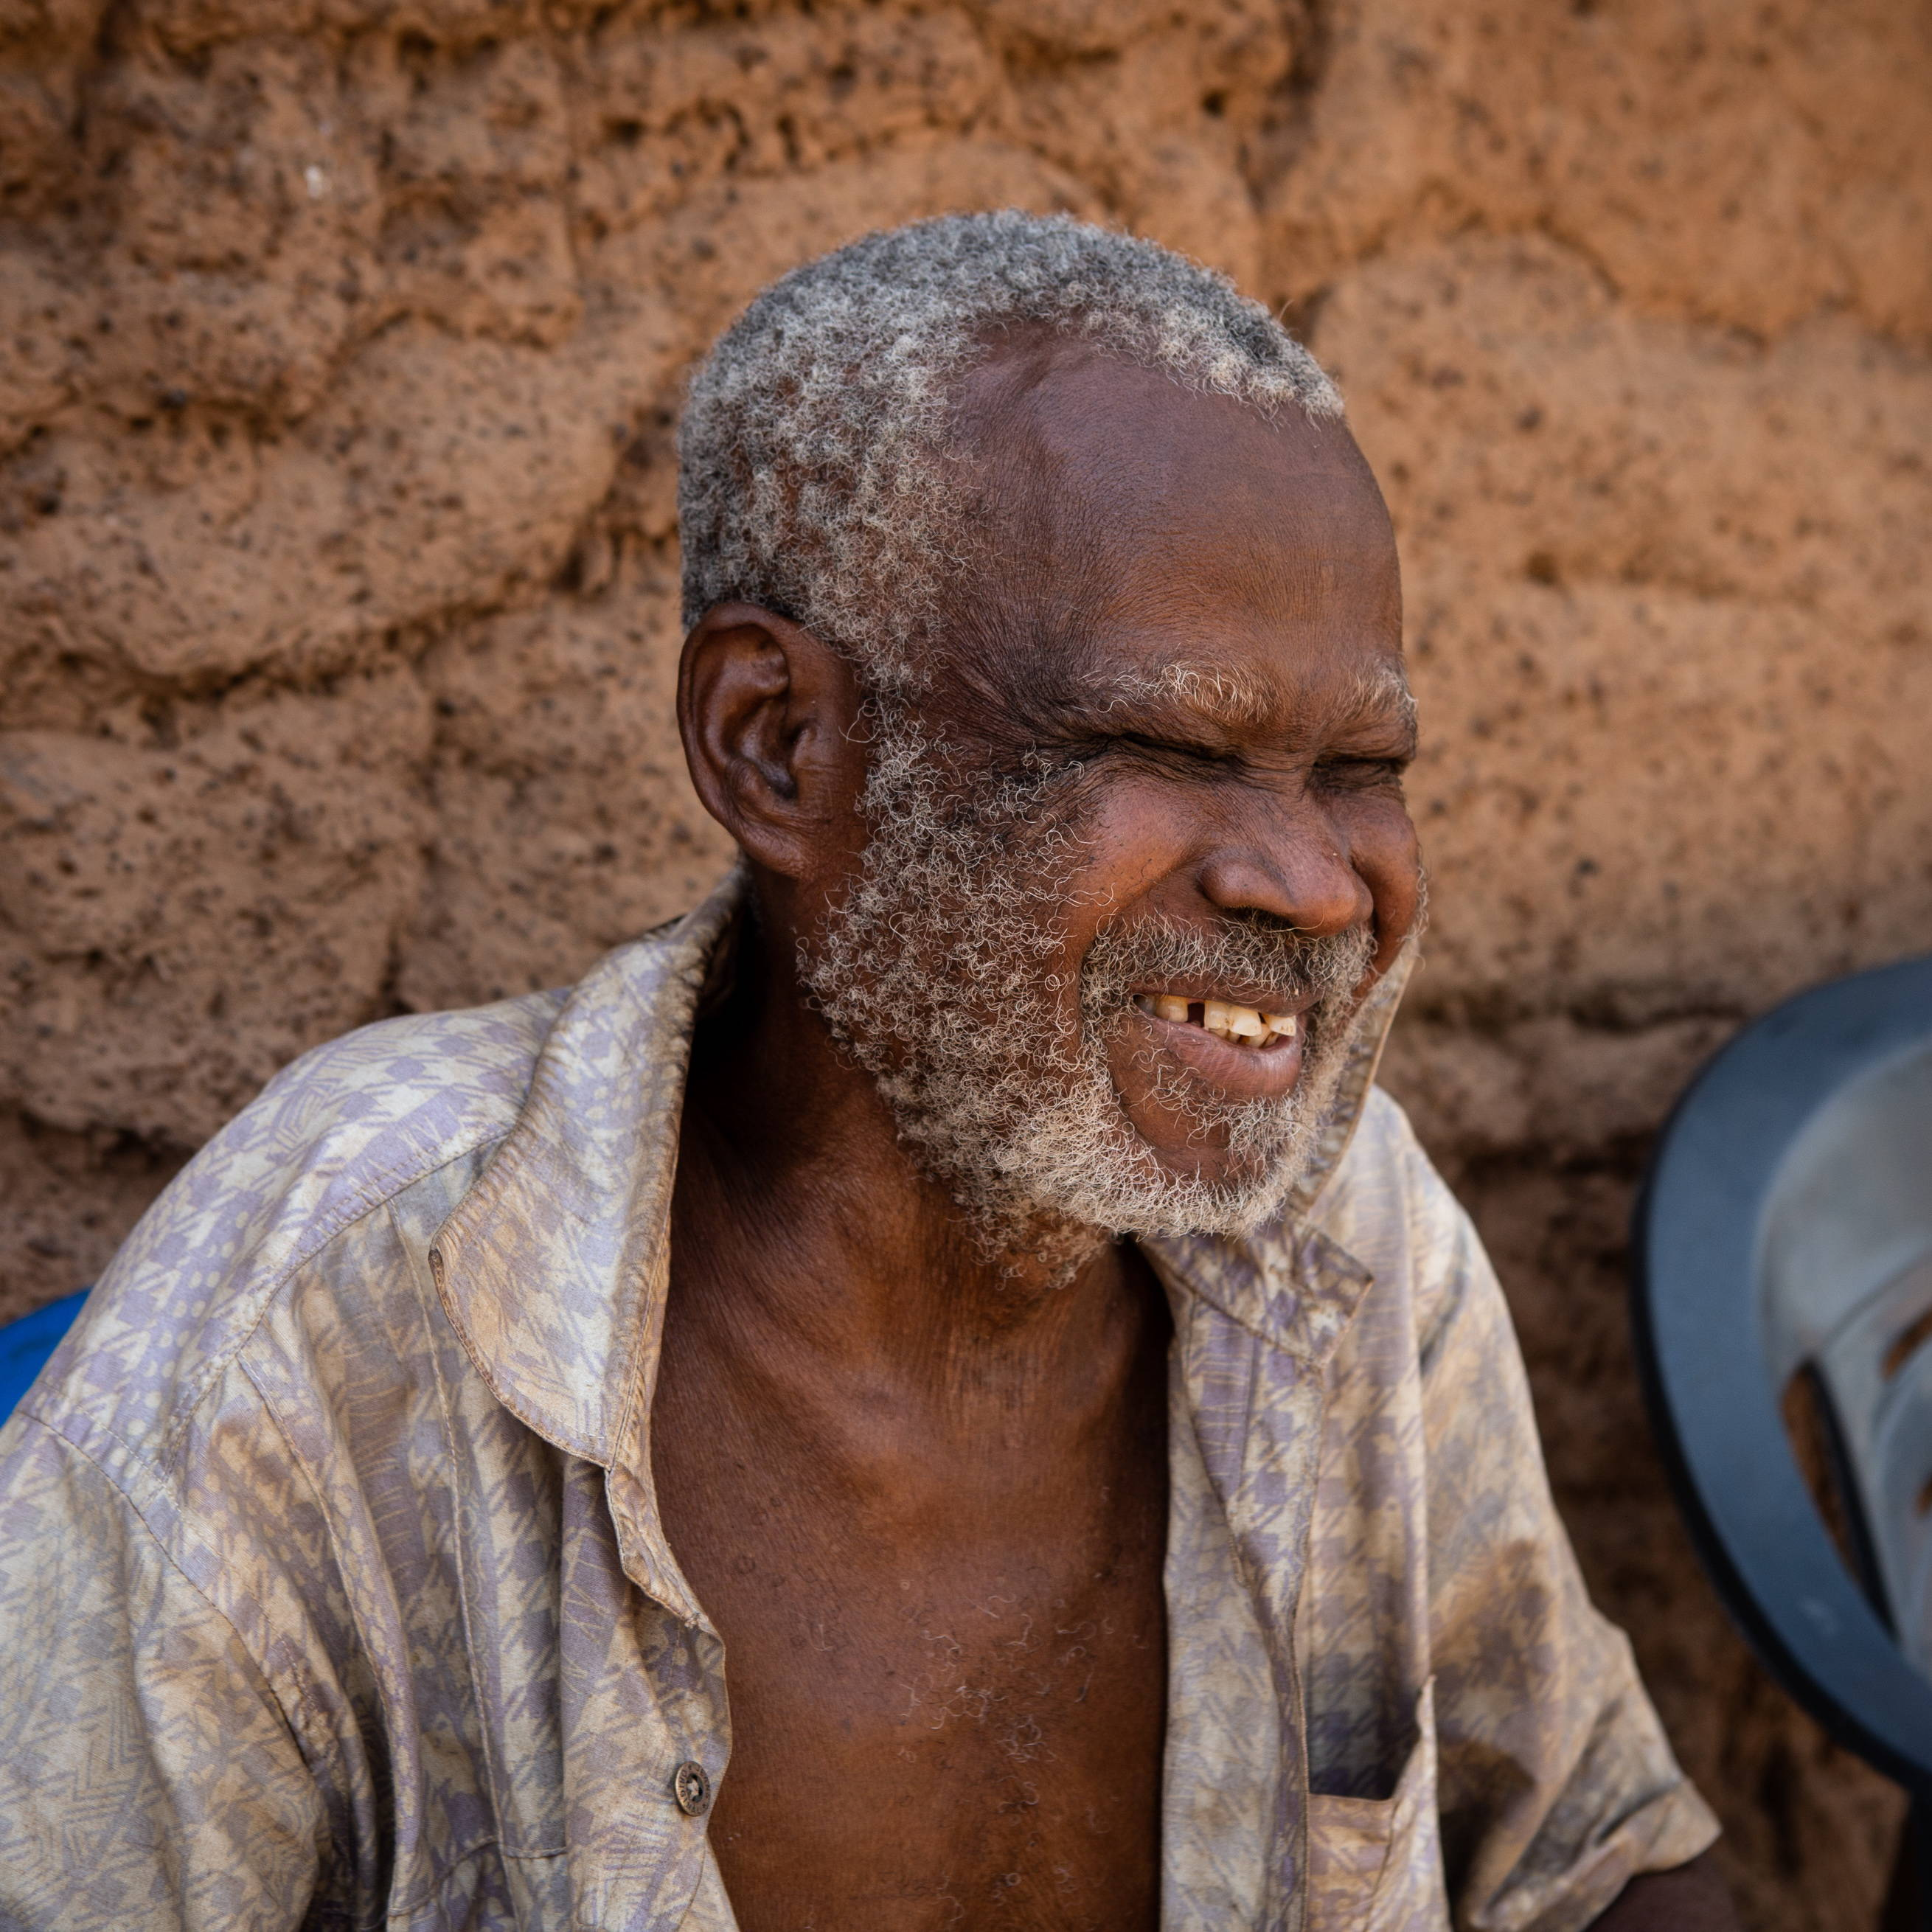 Emmanuel lives in Asubende, he became blind from onchocerciasis at a young age.